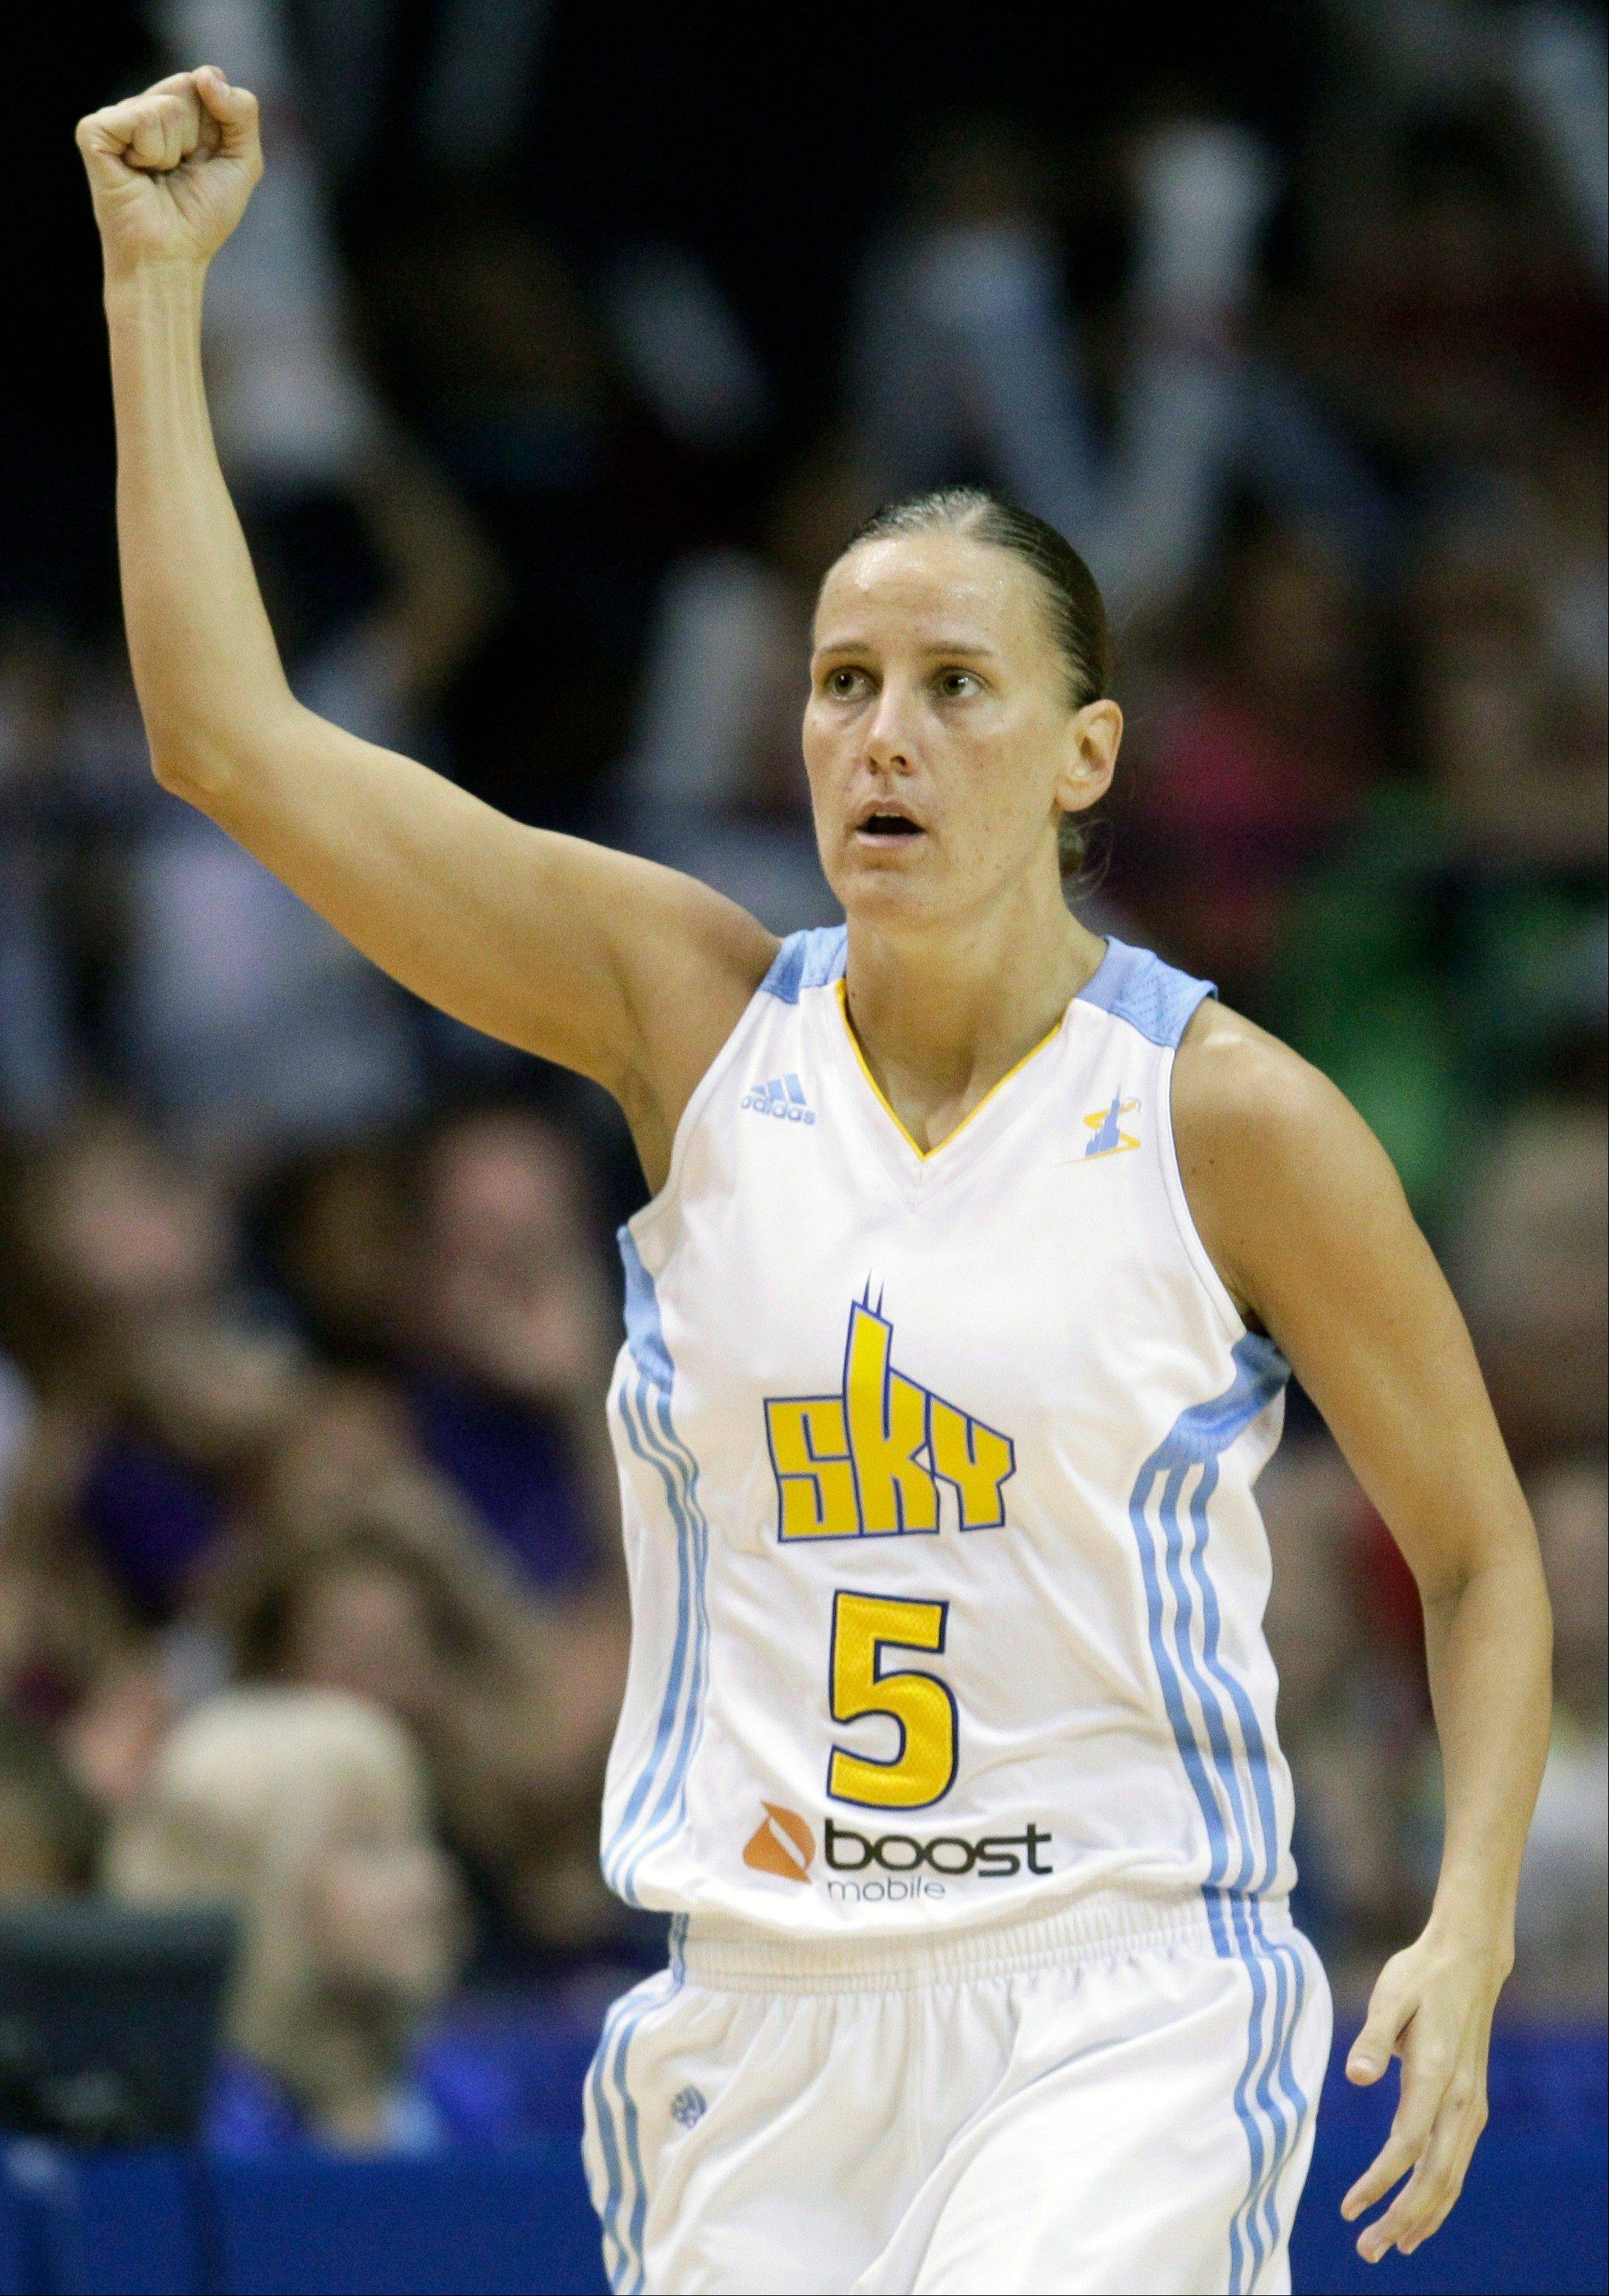 Chicago Sky's Erin Thorn celebrates after scoring a three- points shot during the fourth quarter of an WNBA basketball game against the New York Liberty on Sunday, Aug. 28, 2011, in Rosemont, Ill. The Sky won 74-73. (AP Photo/Nam Y. Huh)